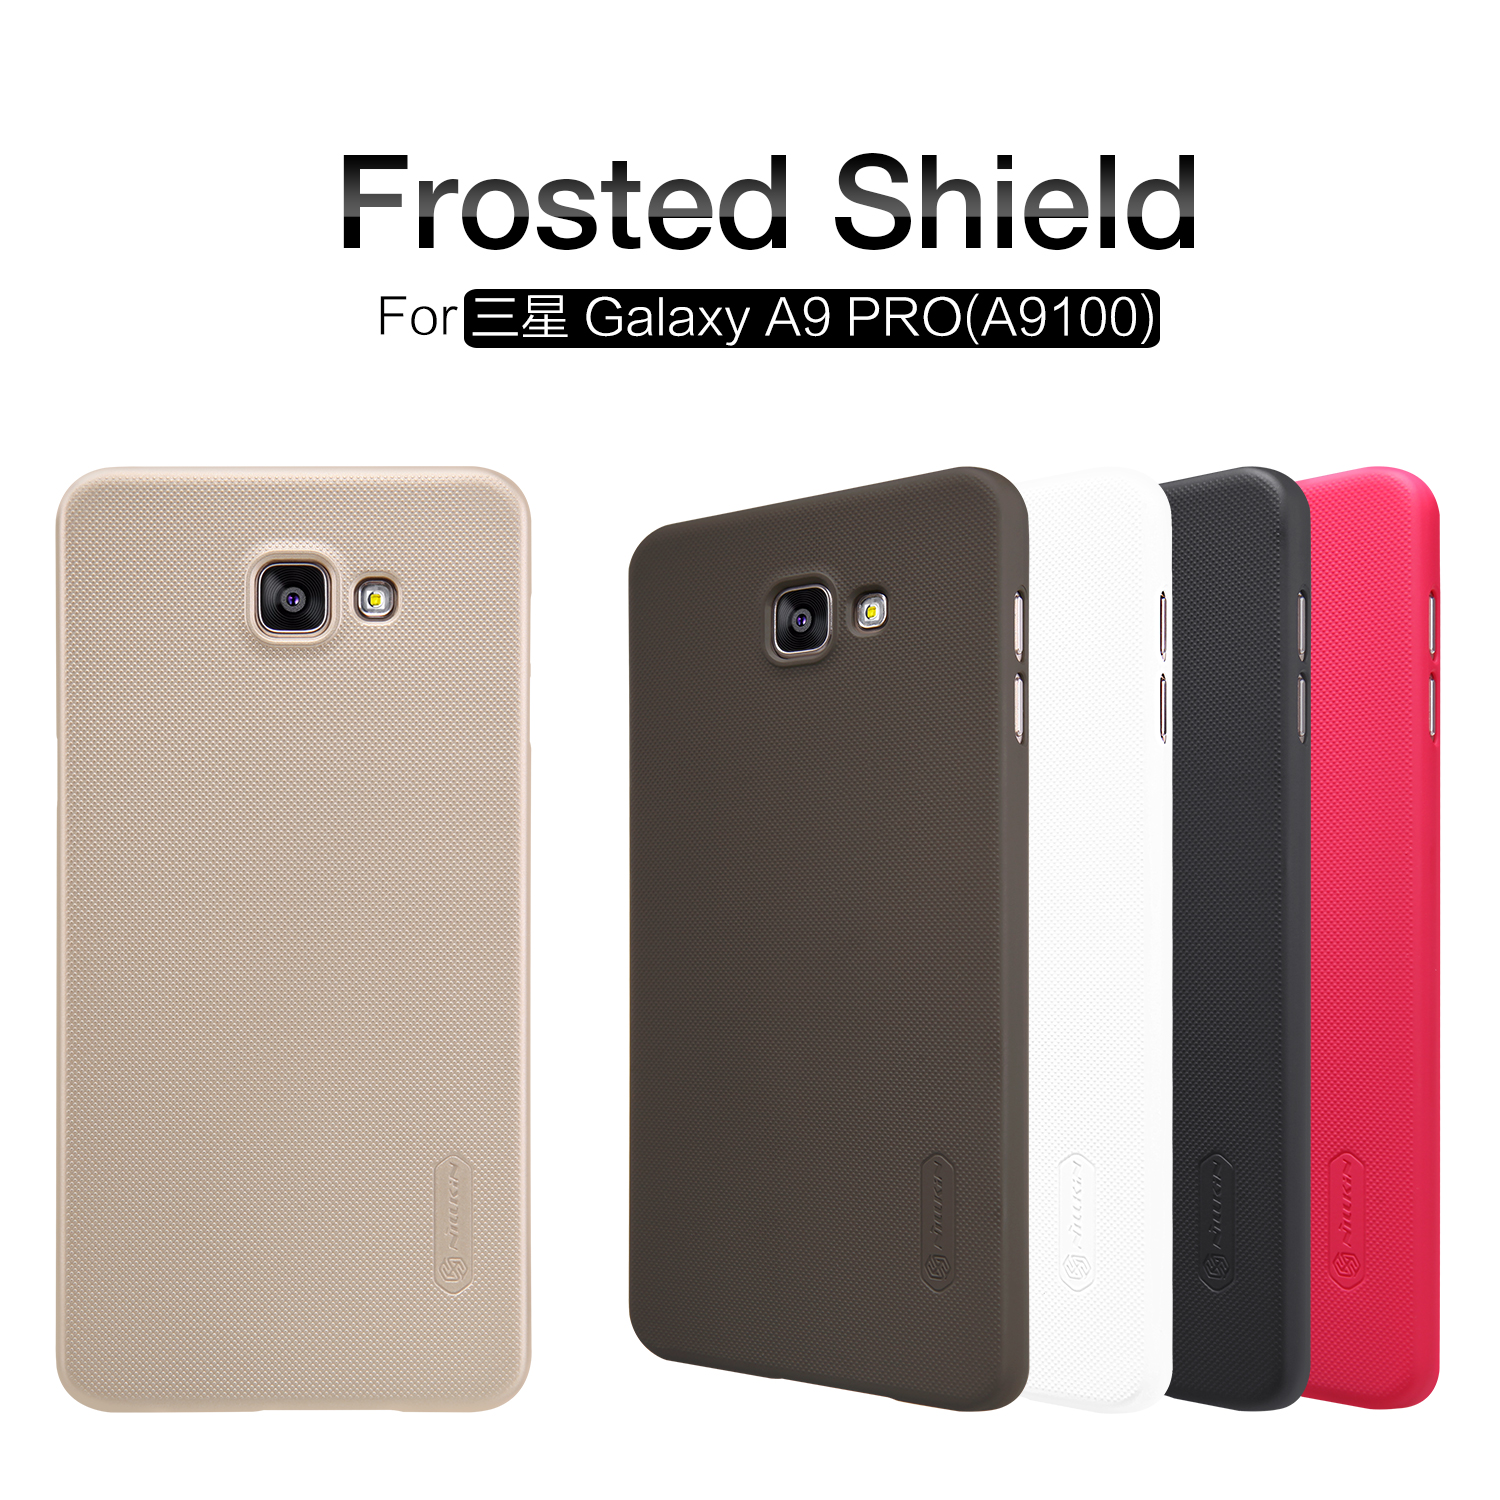 hot sale online f0693 4fd39 Original Nillkin For Samsung Galaxy A9 Pro 2016 A9100 Case Frosted Shield  Back Cover Hight Quality Hard Case-in Half-wrapped Case from Cellphones &  ...